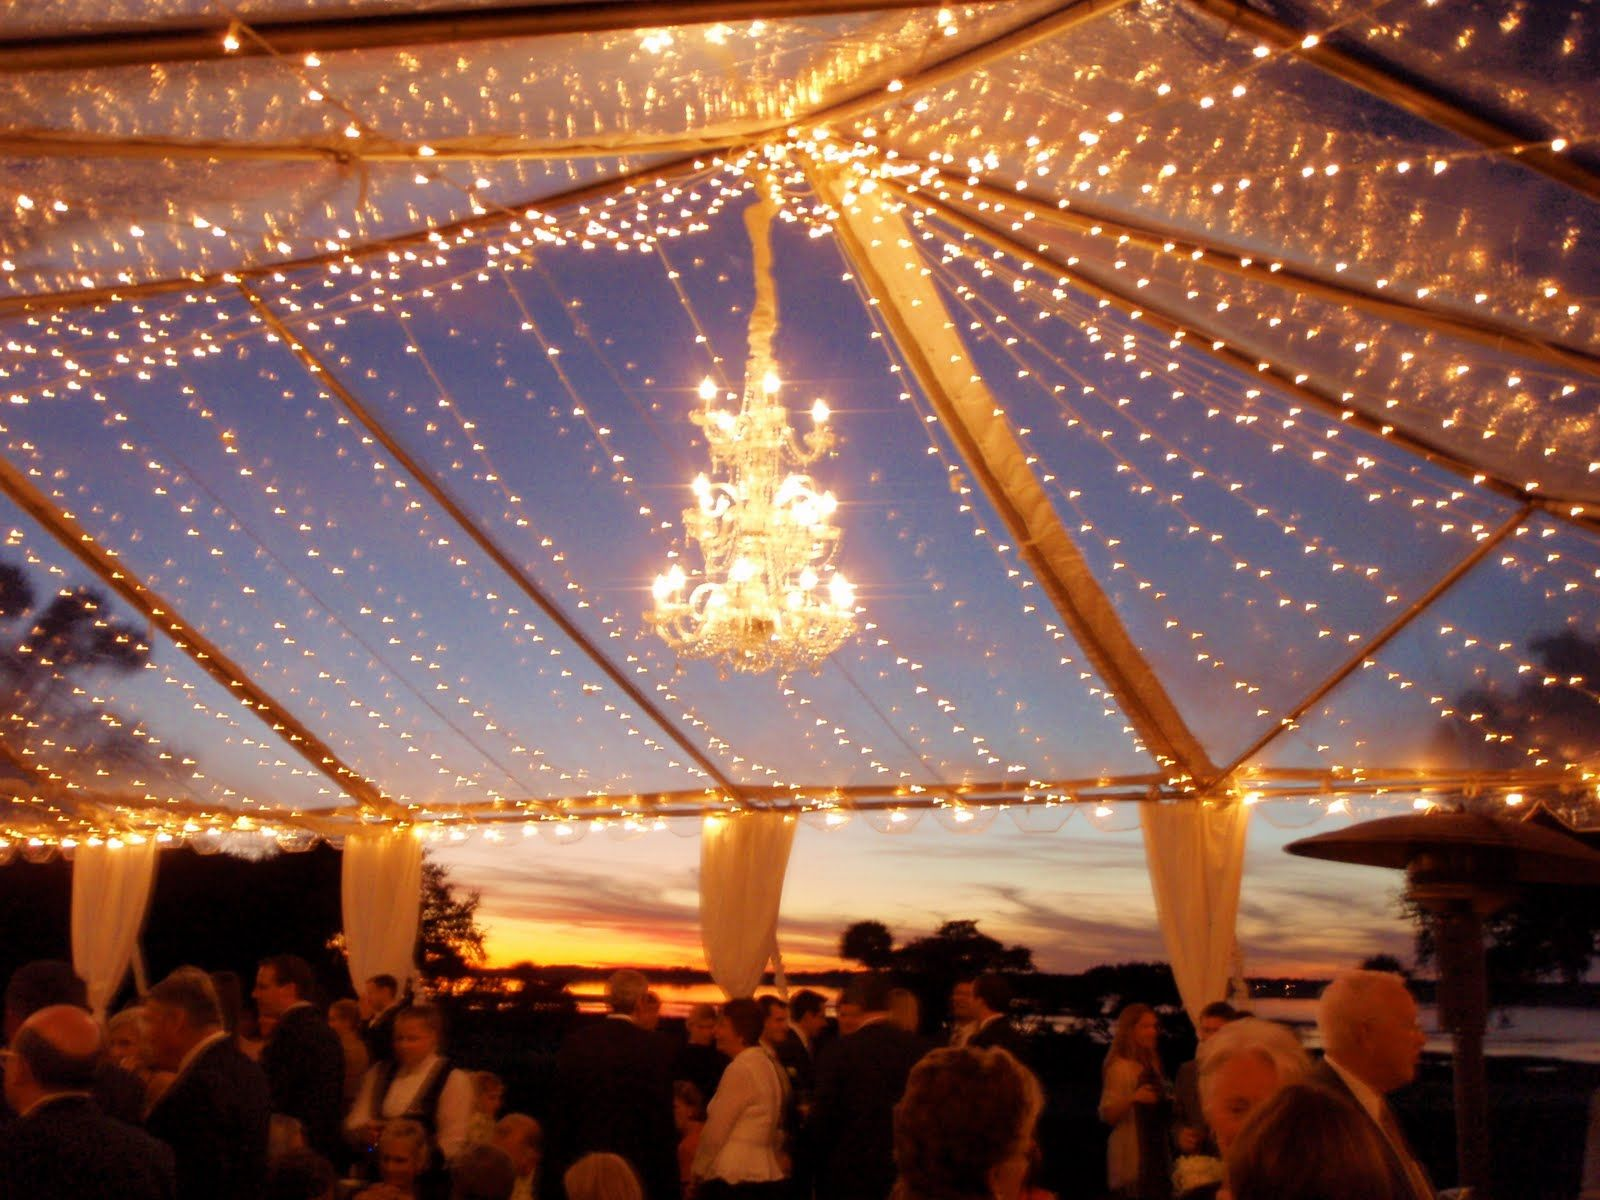 outside wedding lighting ideas. dreamy outdoor wedding lighting chandelier and fairy lights outside ideas h